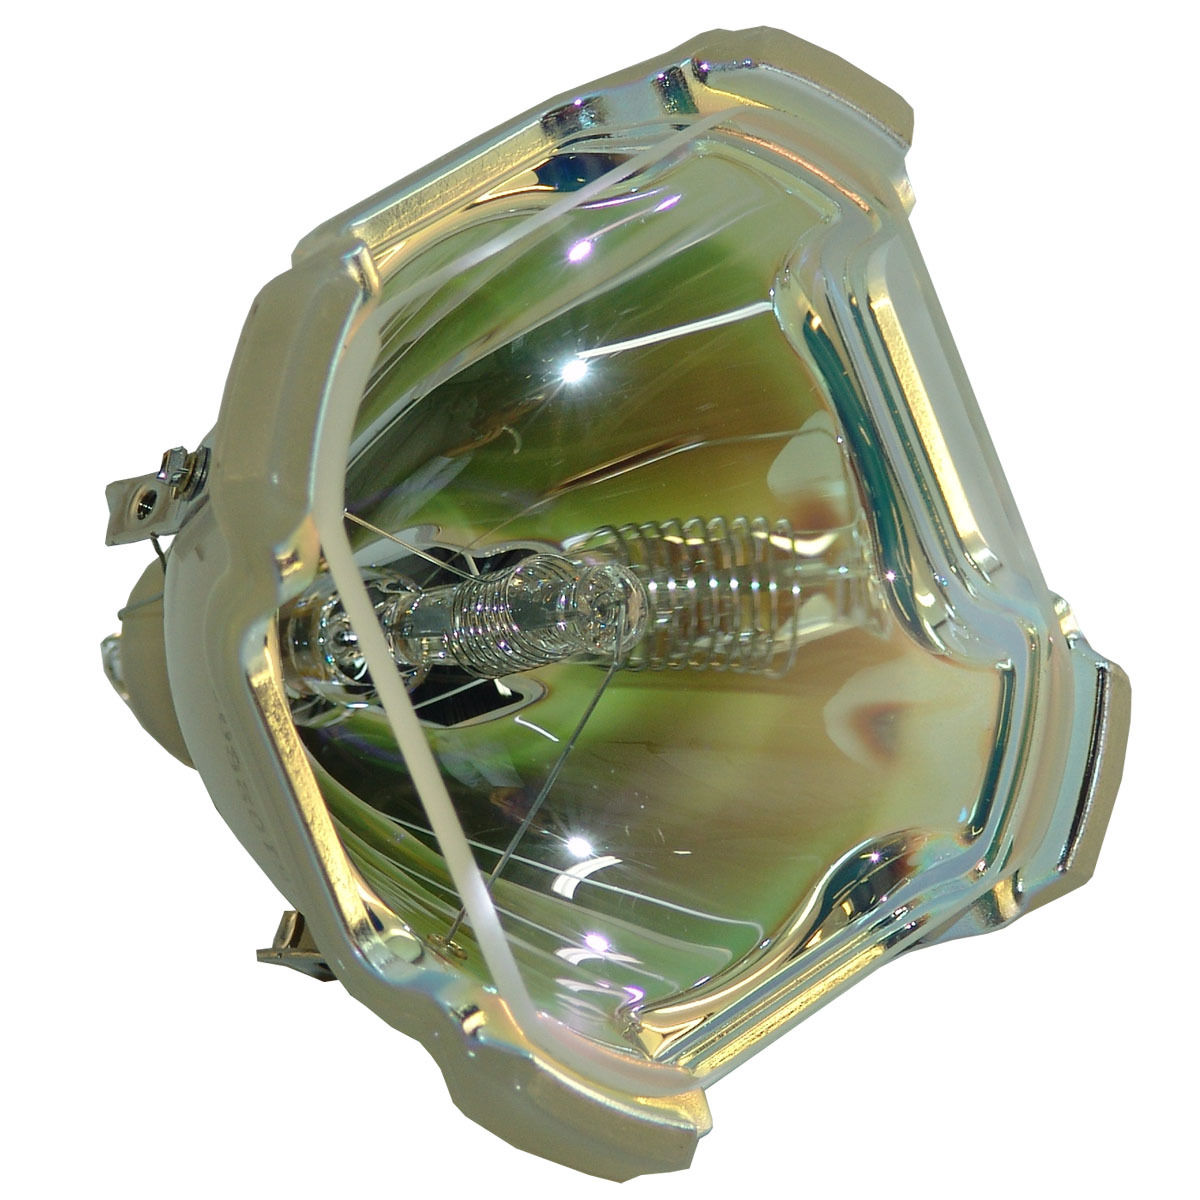 Compatible Bare Bulb POA-LMP105 LMP105 610-330-7329 for SANYO PLC-XT20 PLC-XT21 PLC-XT25 Projector lamp bulb without housing  compatible bare bulb poa lmp57 lmp57 610 308 3117 for sanyo plc sw30 plc sw35 projector lamp bulb without housing free shipping